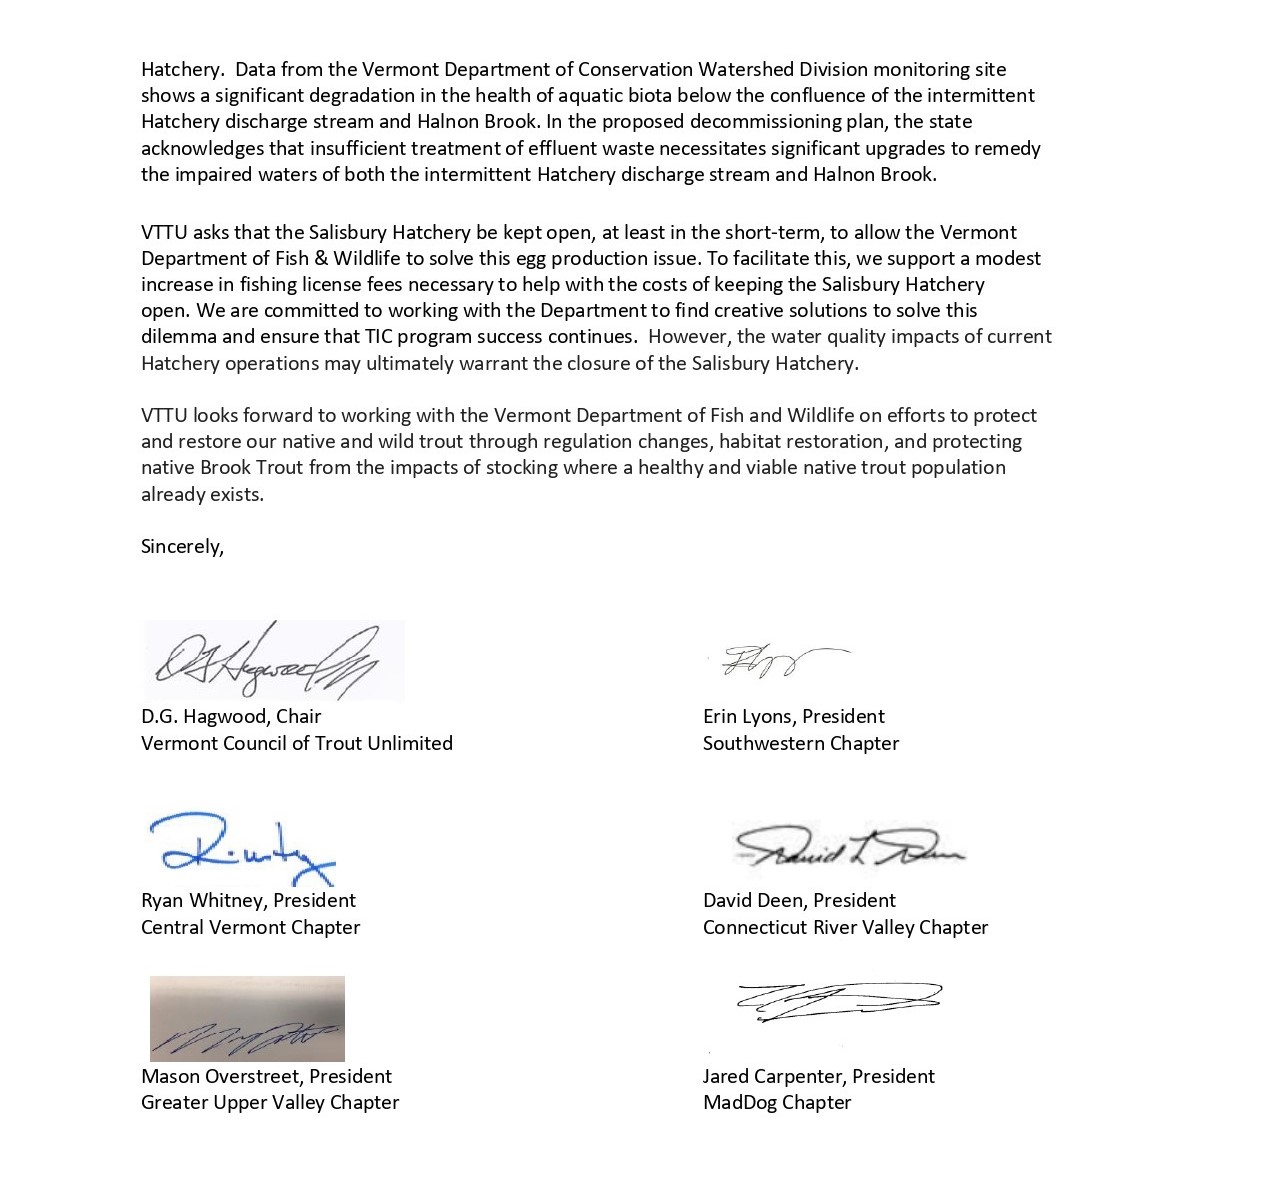 ghagwoodgmail.com_02.28.2019_VT TU Council letter to Gov. Scott Final.docx_pages-to-jpg-0003.jpg